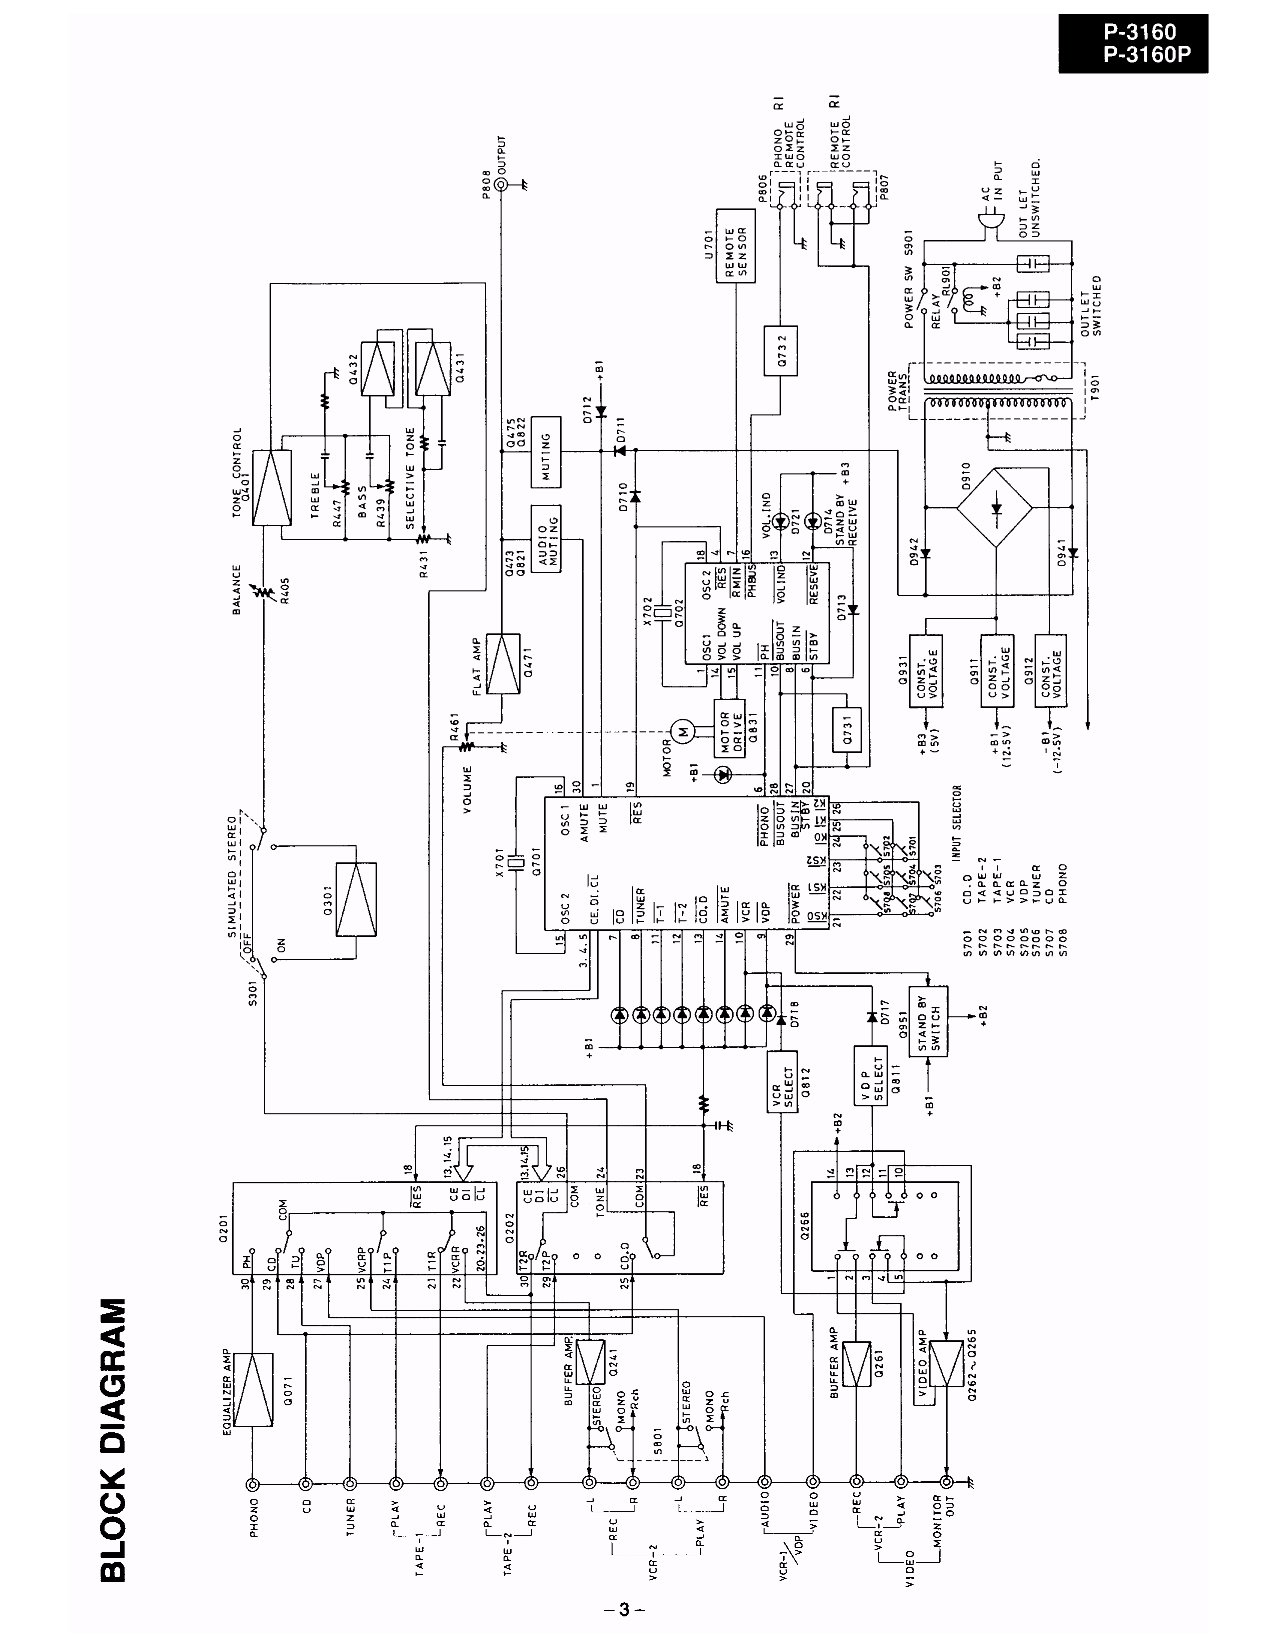 PDF manual for Onkyo Other P-304 pre-amplifier